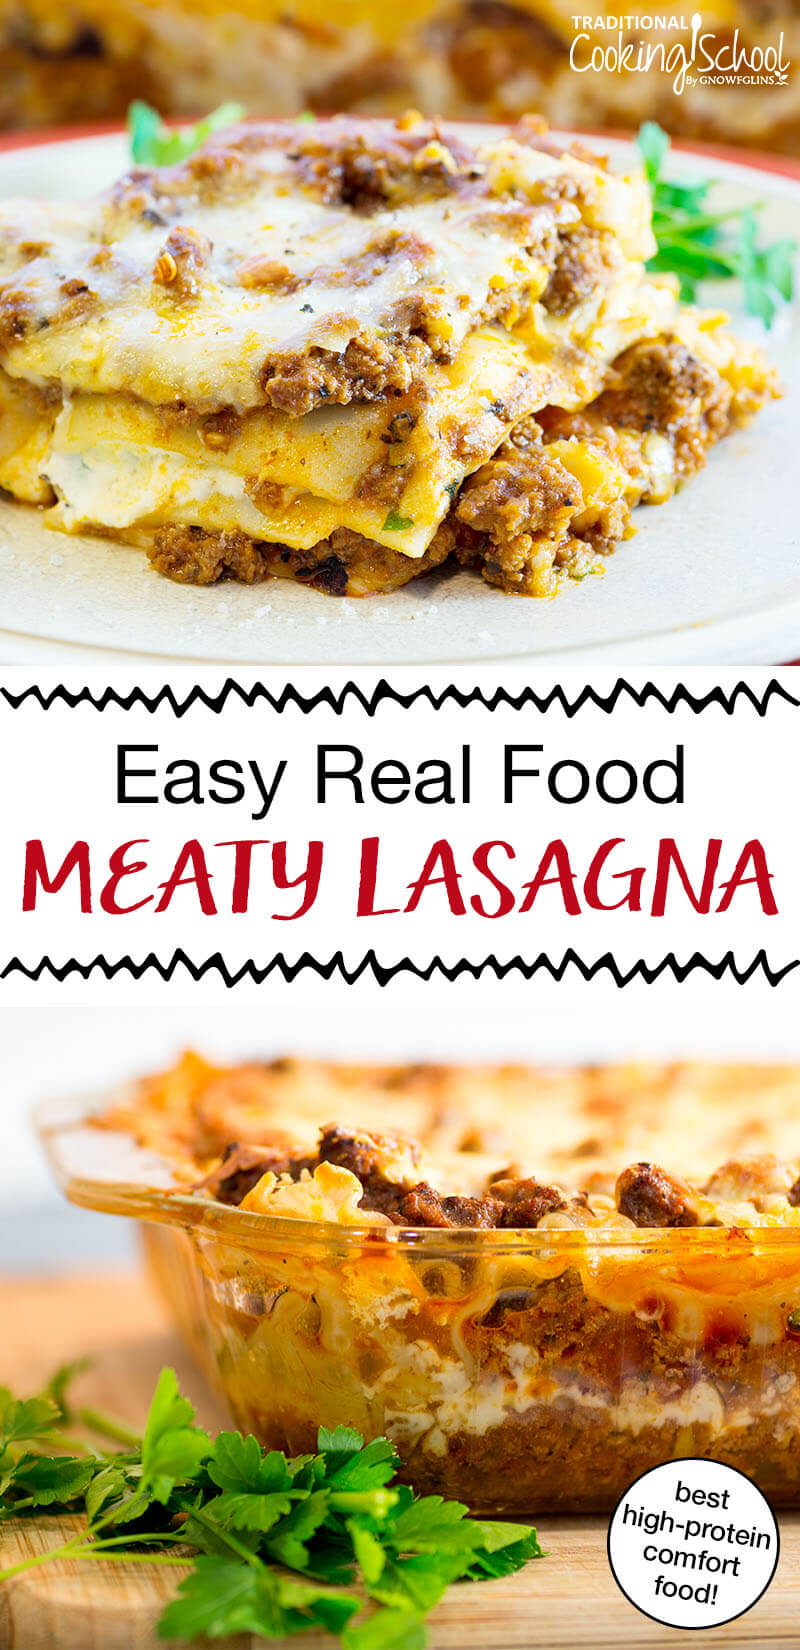 """photo collage of classic lasagna in a casserole dish, with text overlay: """"Easy Real Food Meaty Lasagna (best high-protein comfort food!)"""""""